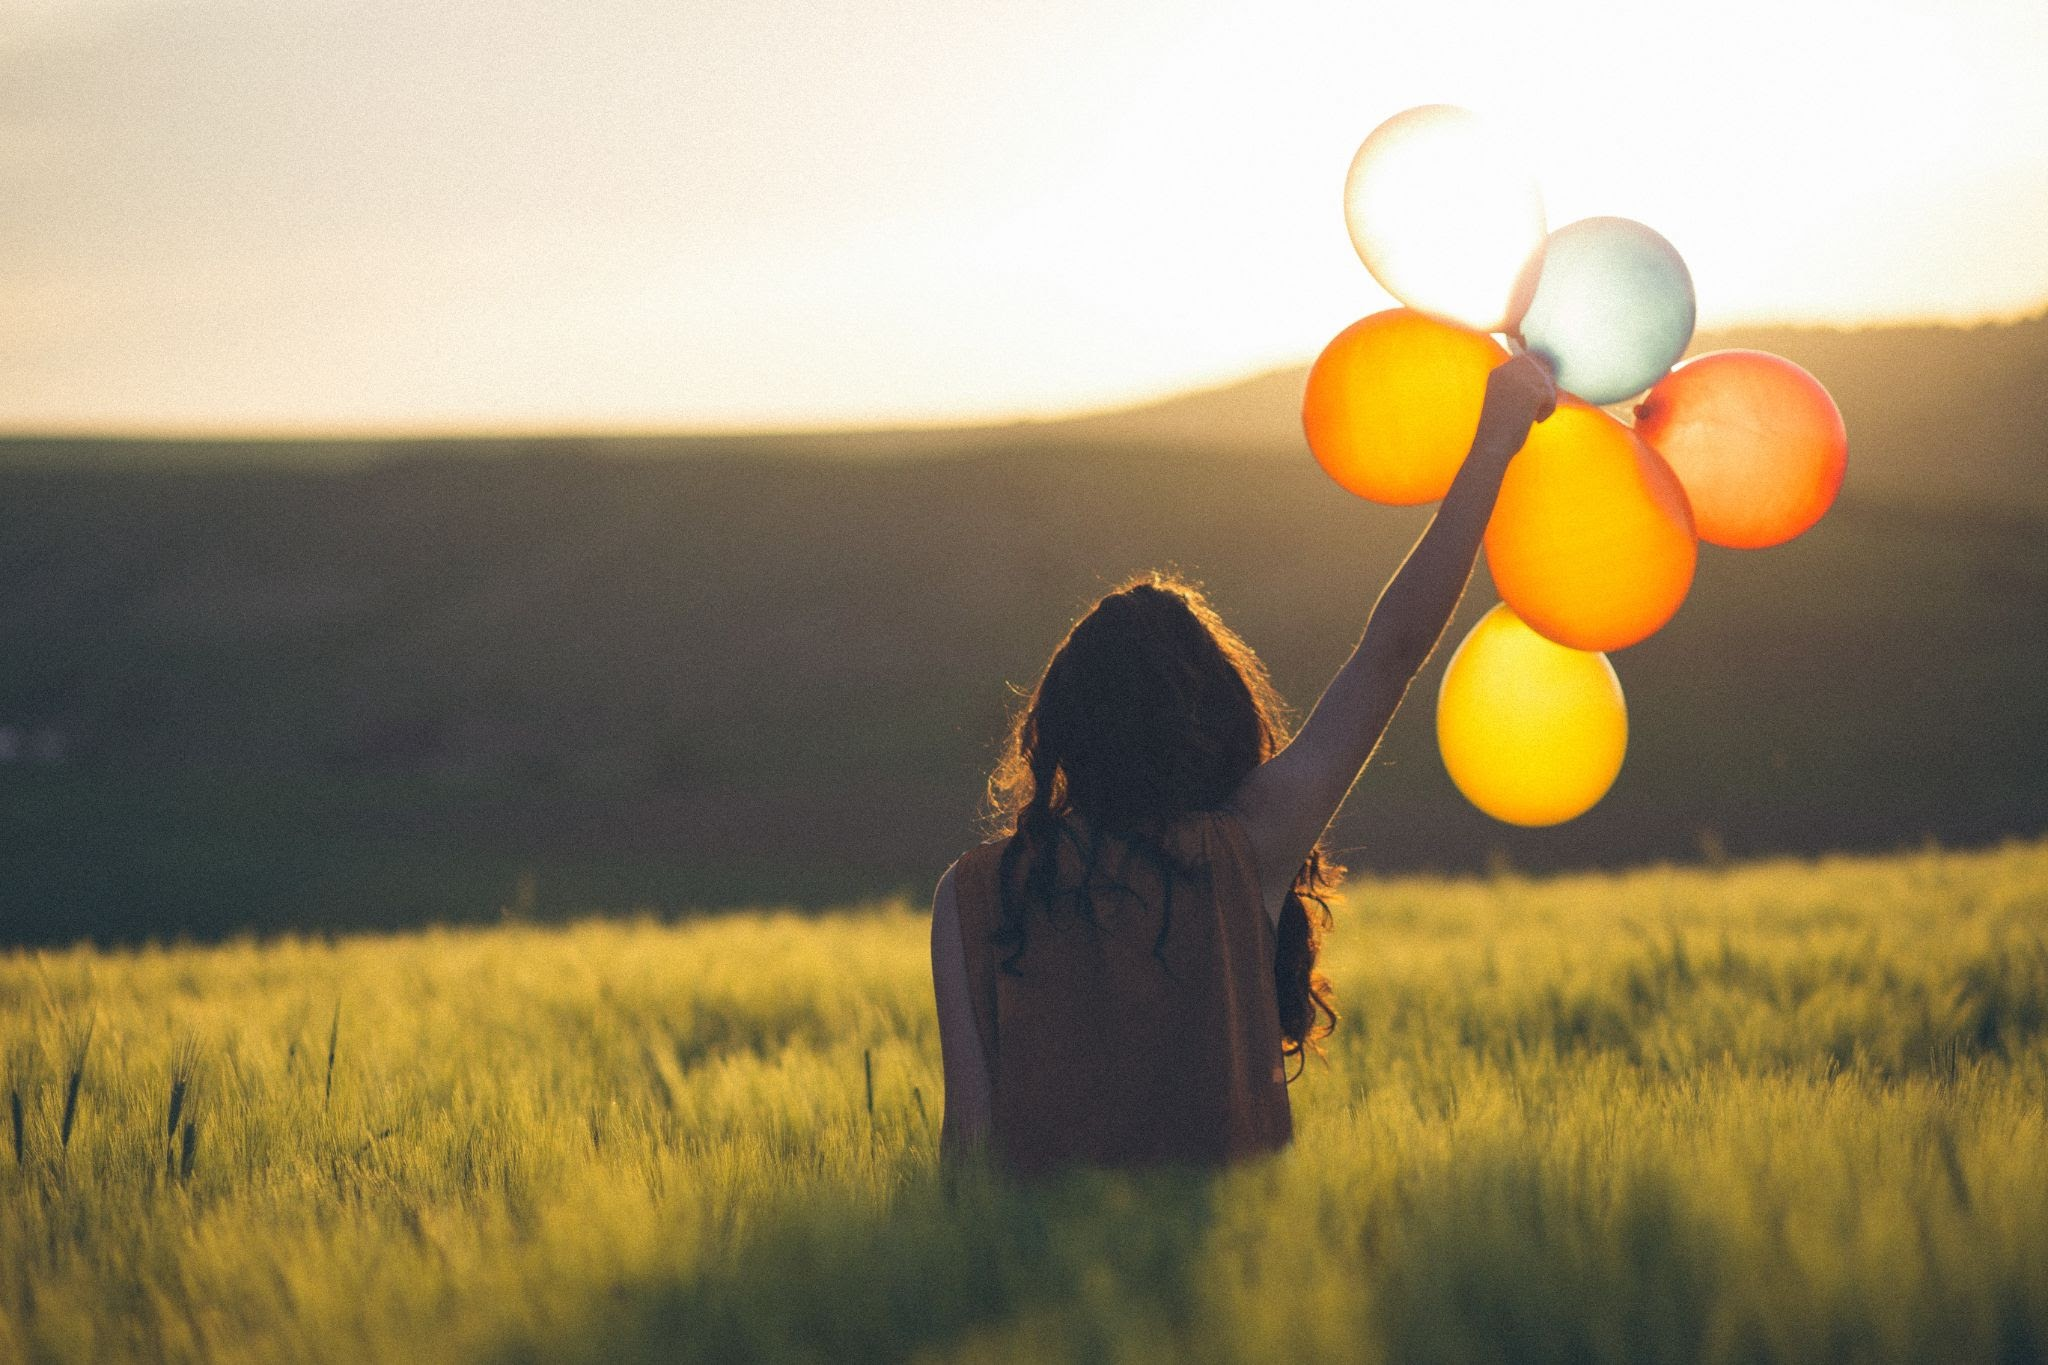 an-image-of-a-woman-with-balloons